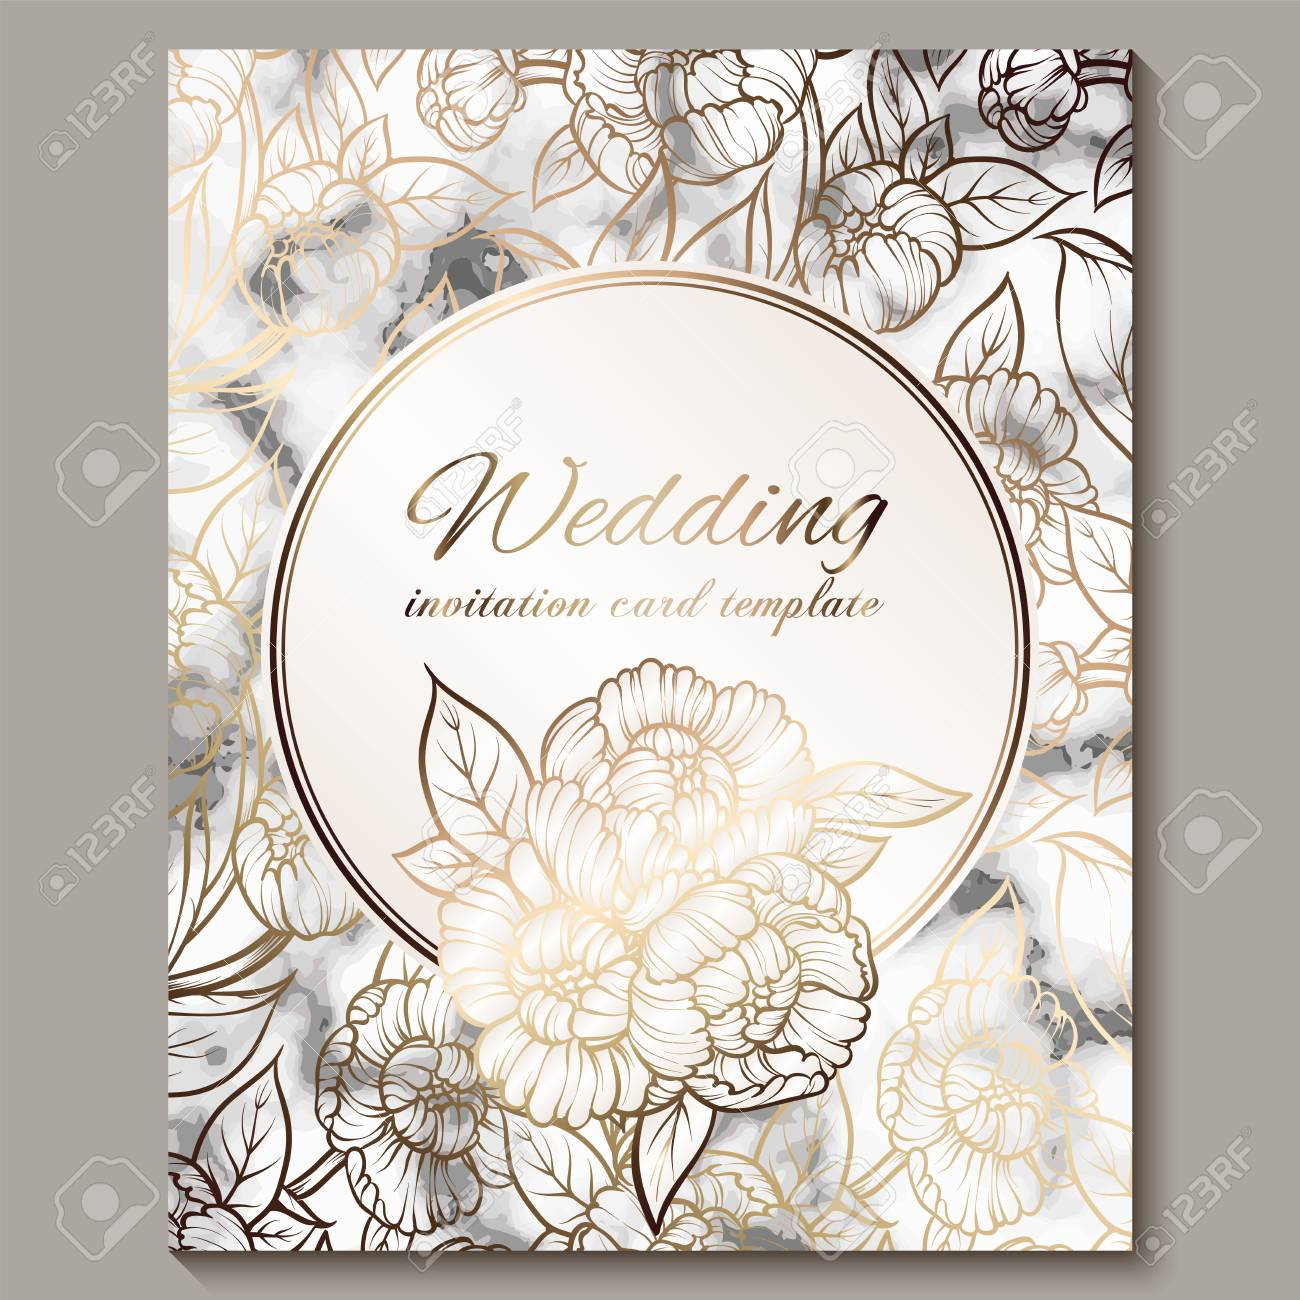 Fancy Wedding Invitations.Luxury And Elegant Wedding Invitation Cards With Marble Texture